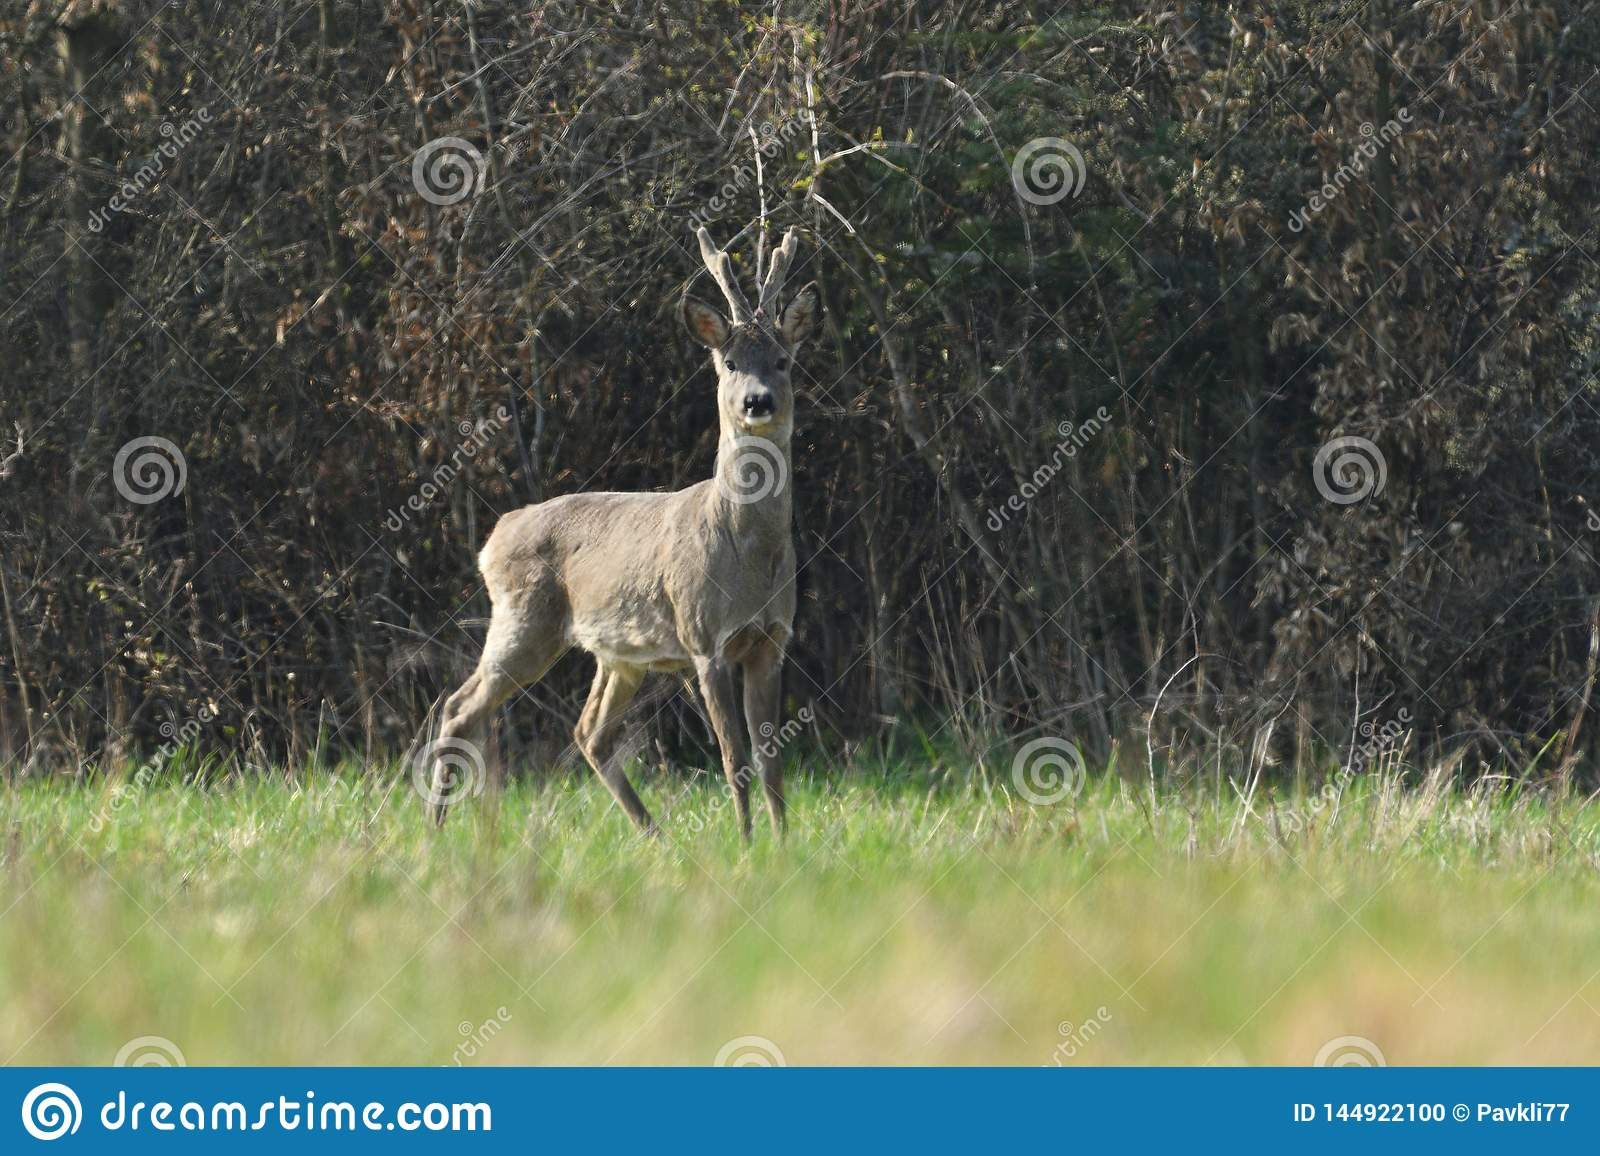 Roe deer with antler walking and grazing grass inside the forest